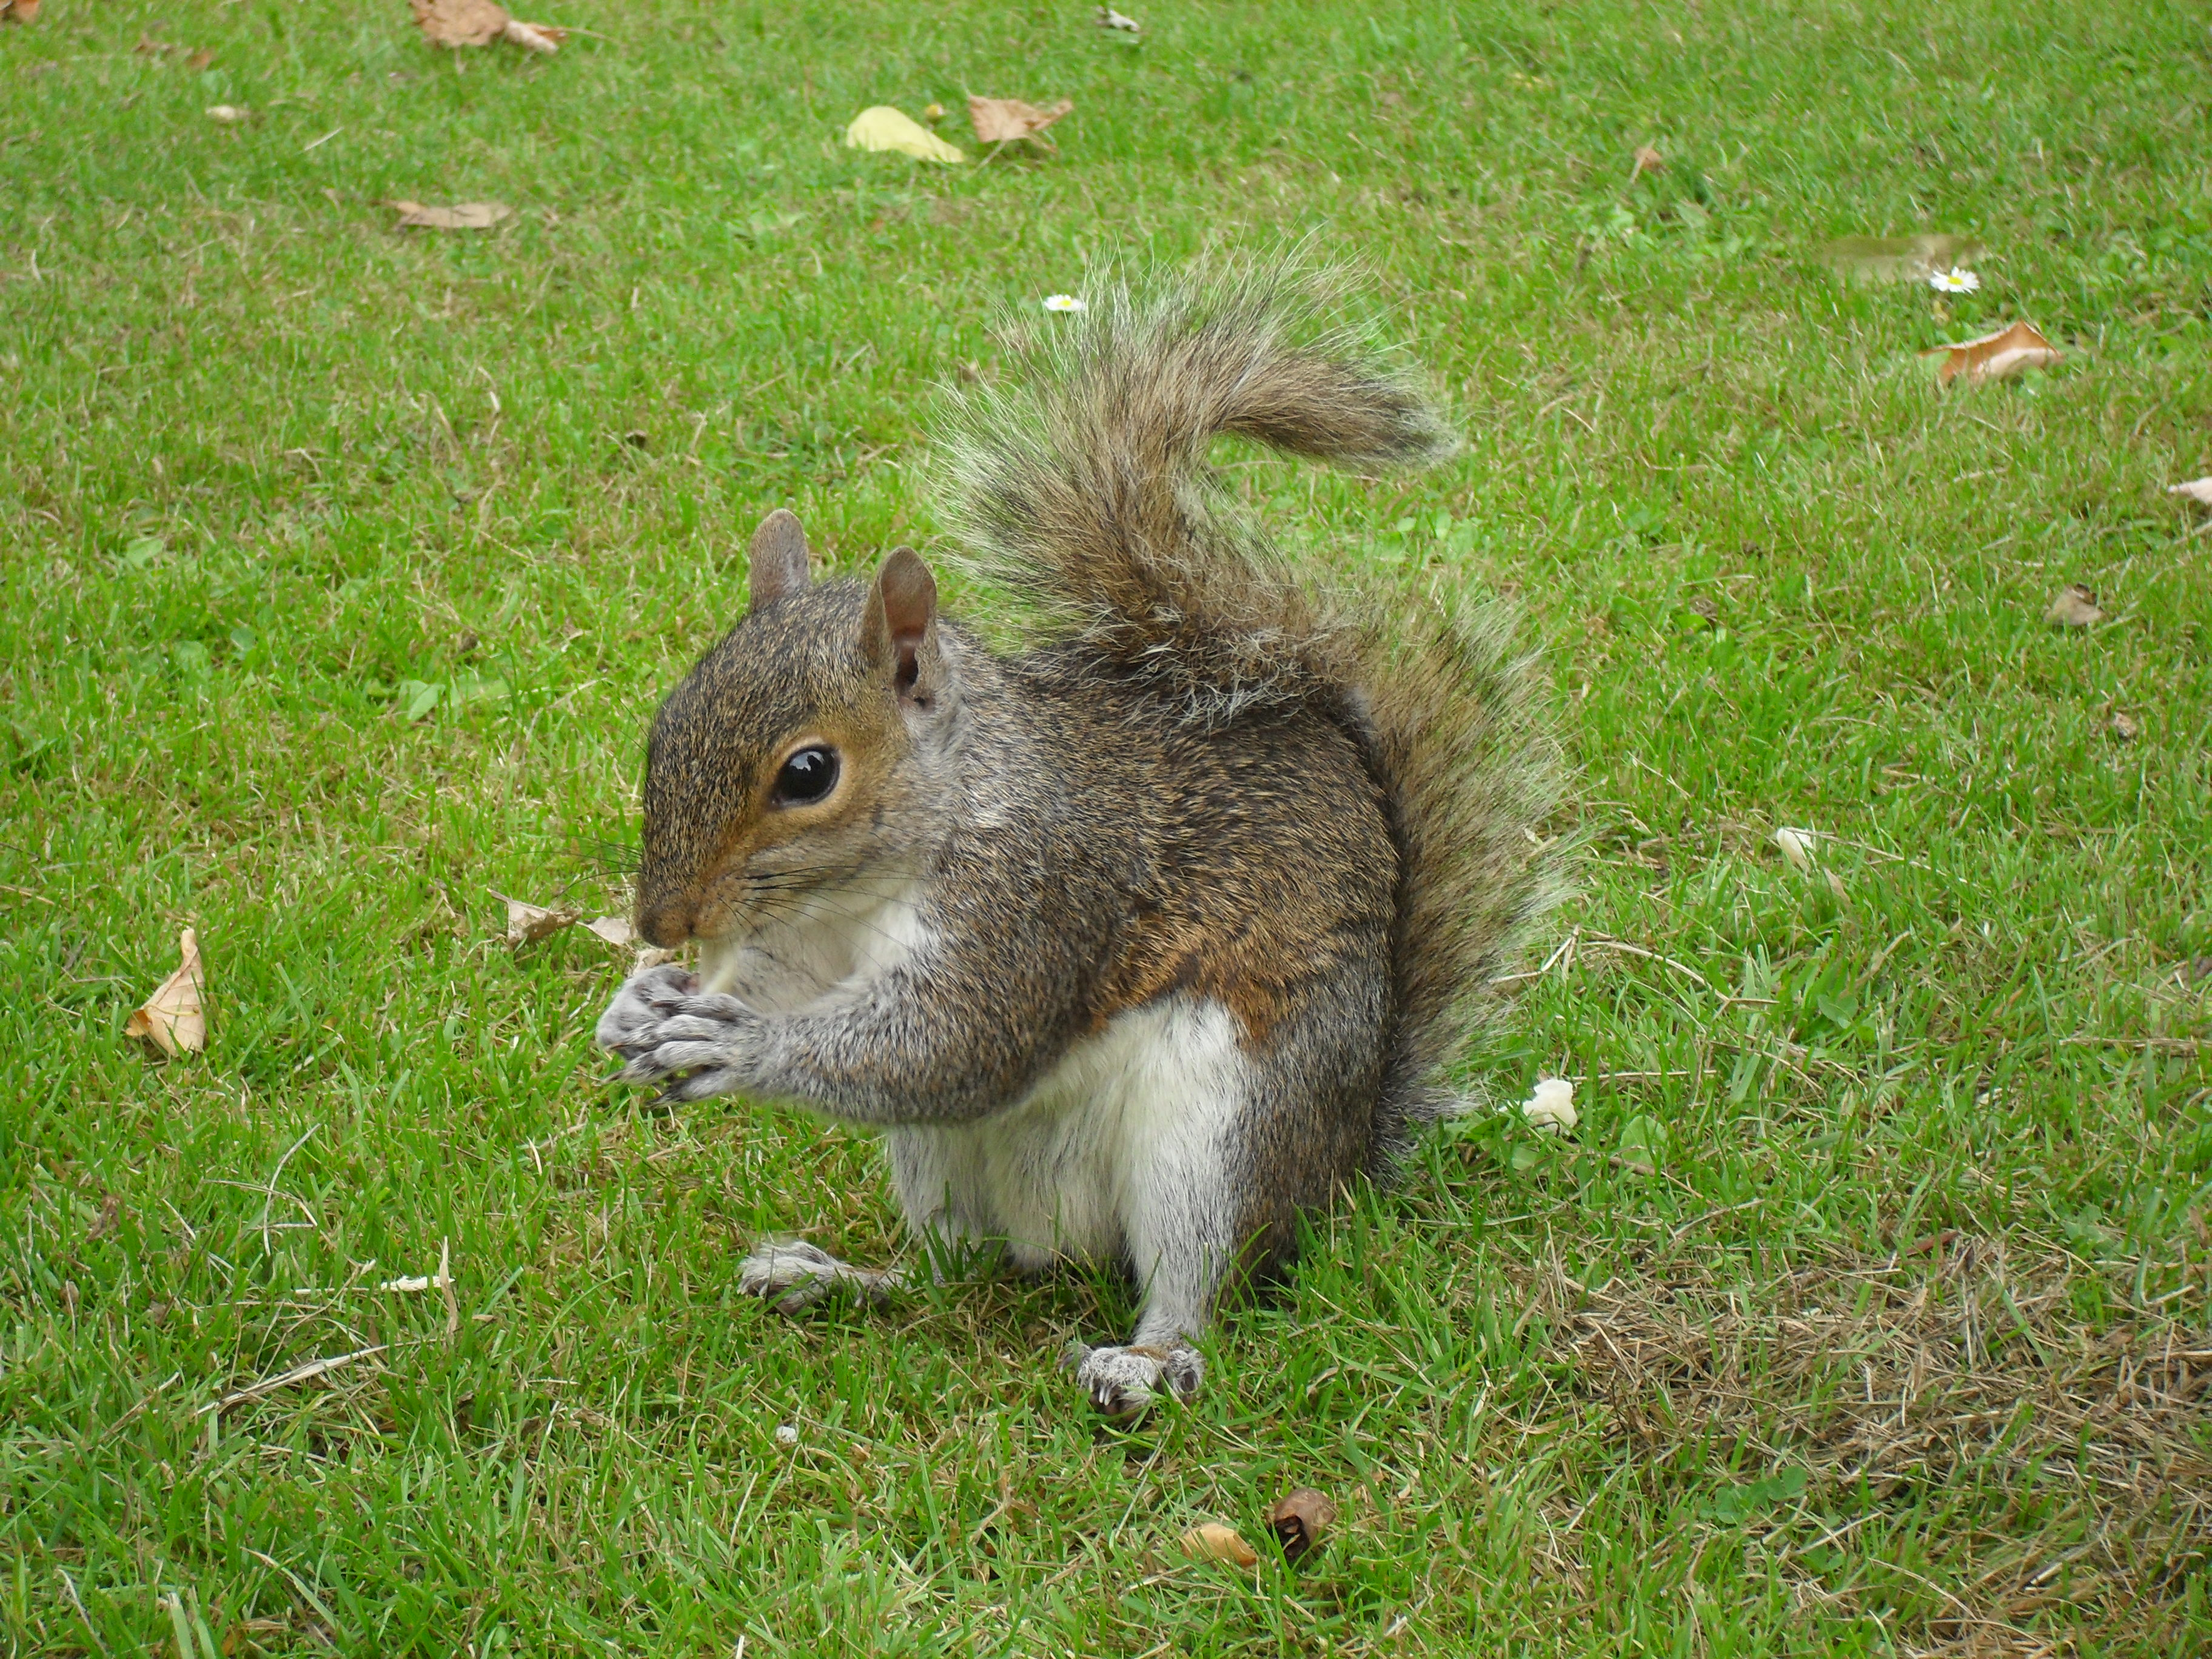 friendly squirel